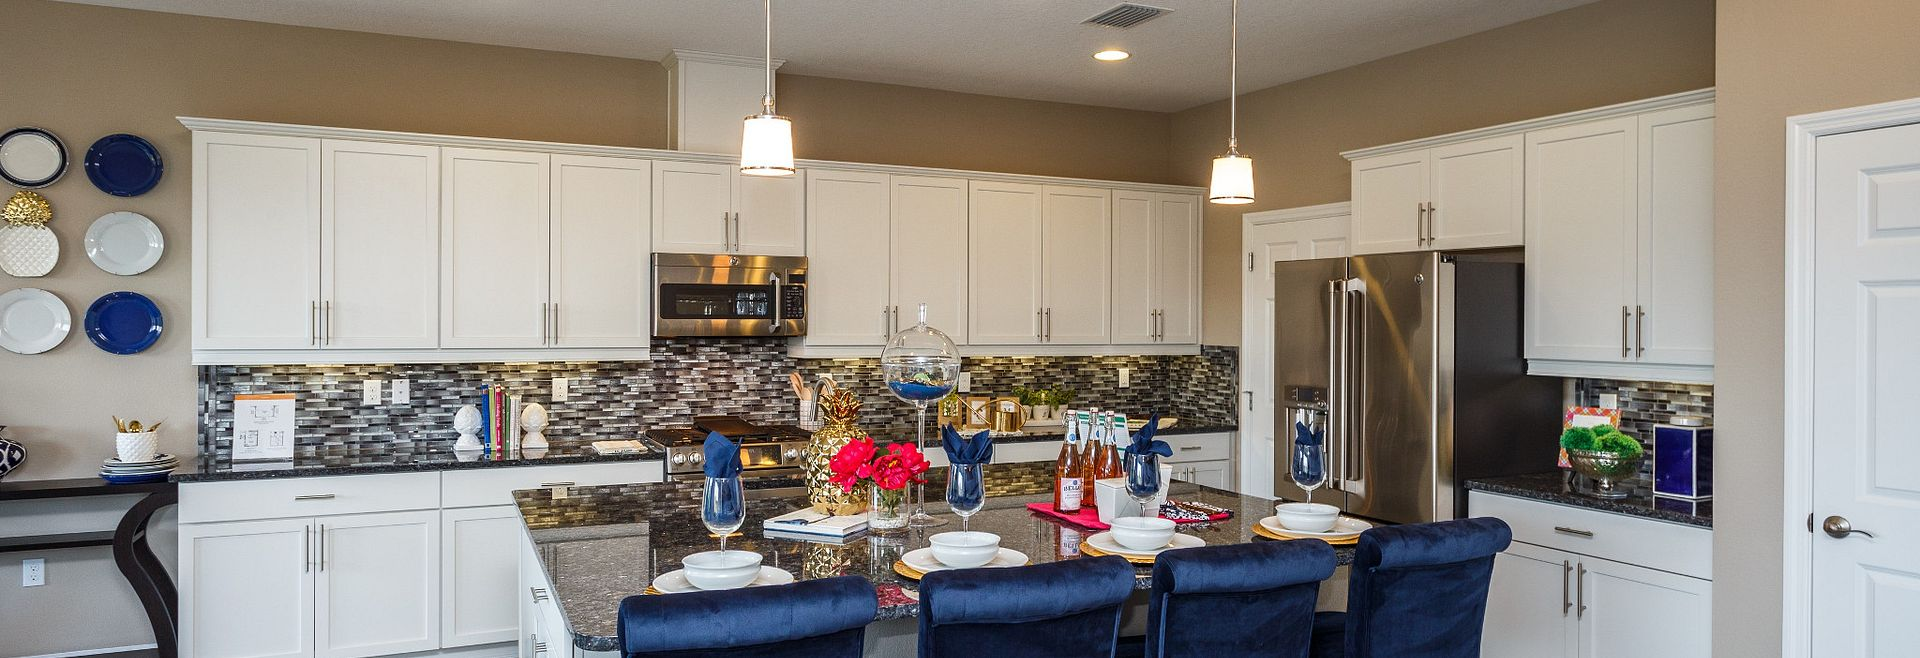 Trilogy Orlando Proclaim Plan Kitchen